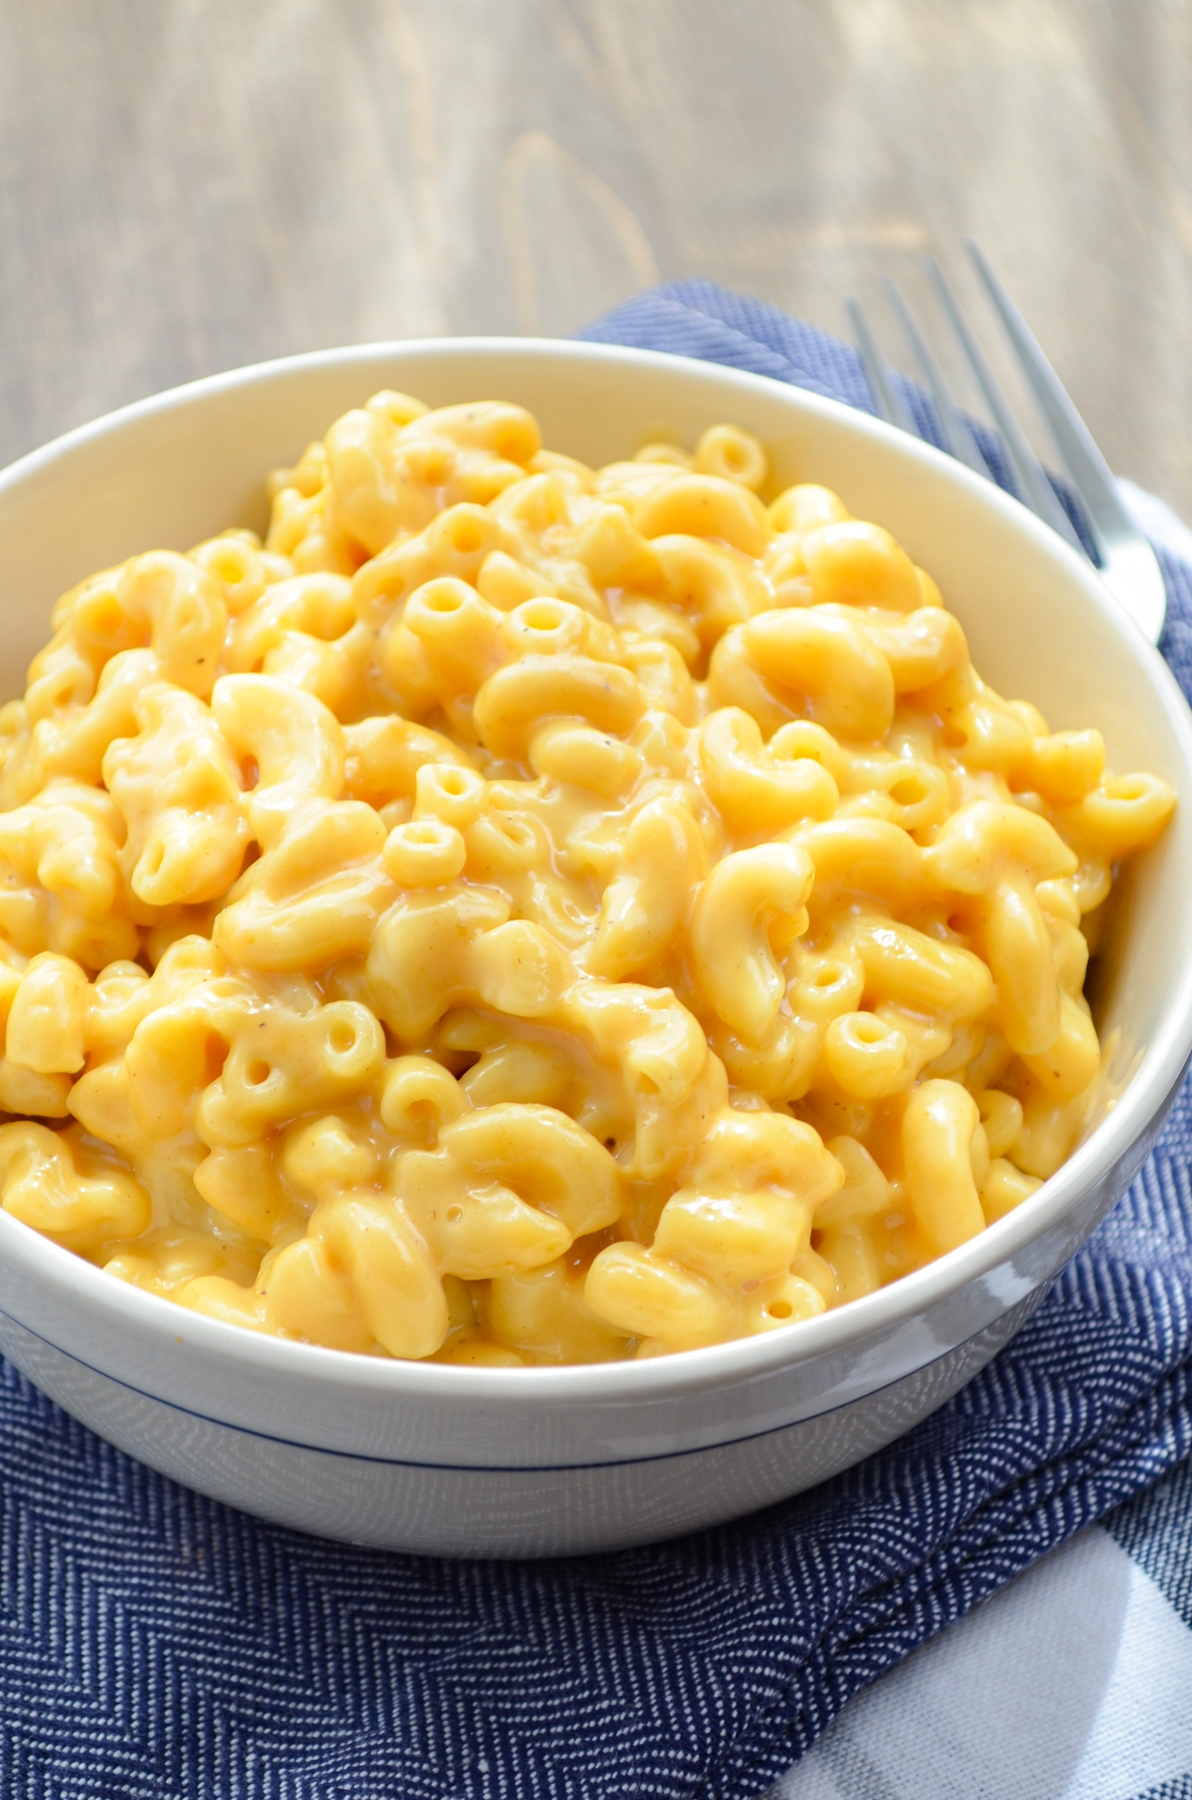 A bowl of macaroni and cheese, resting on blue napkins.